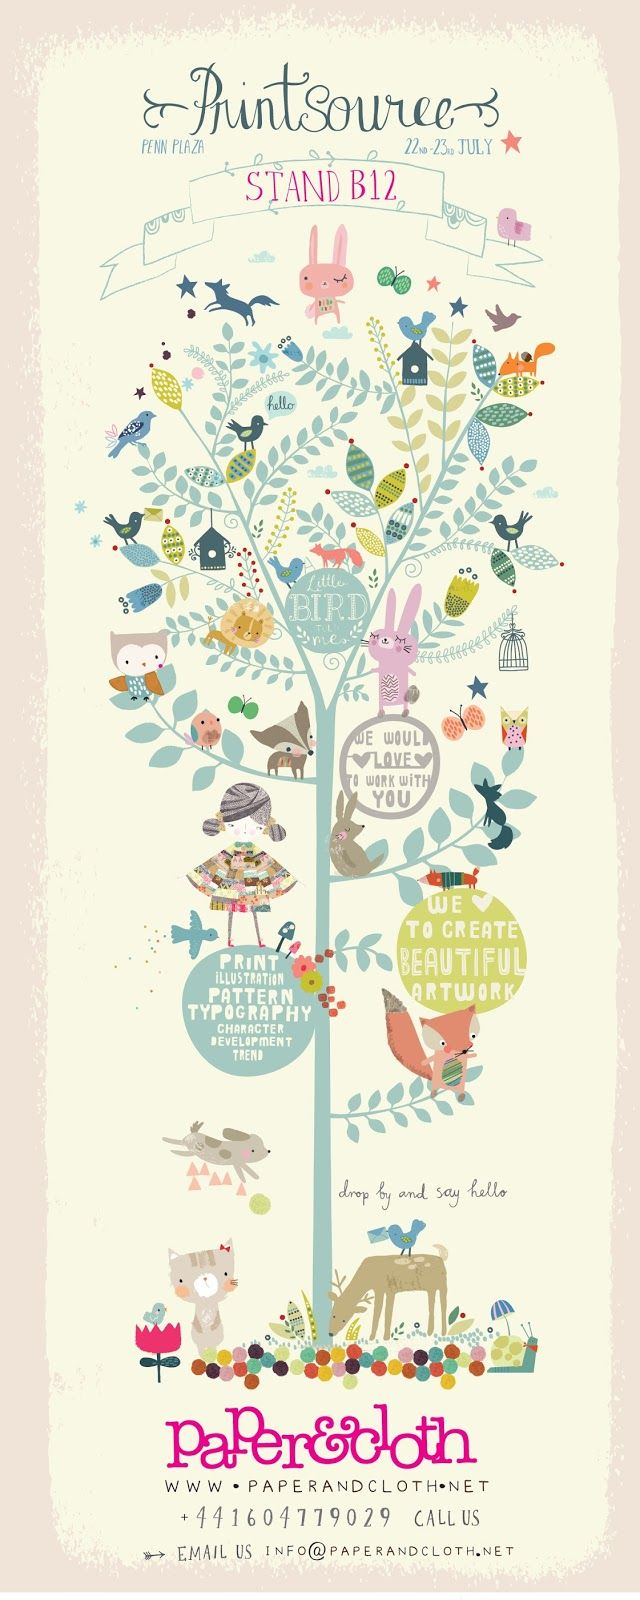 printsource poster 2013 by paperandcloth